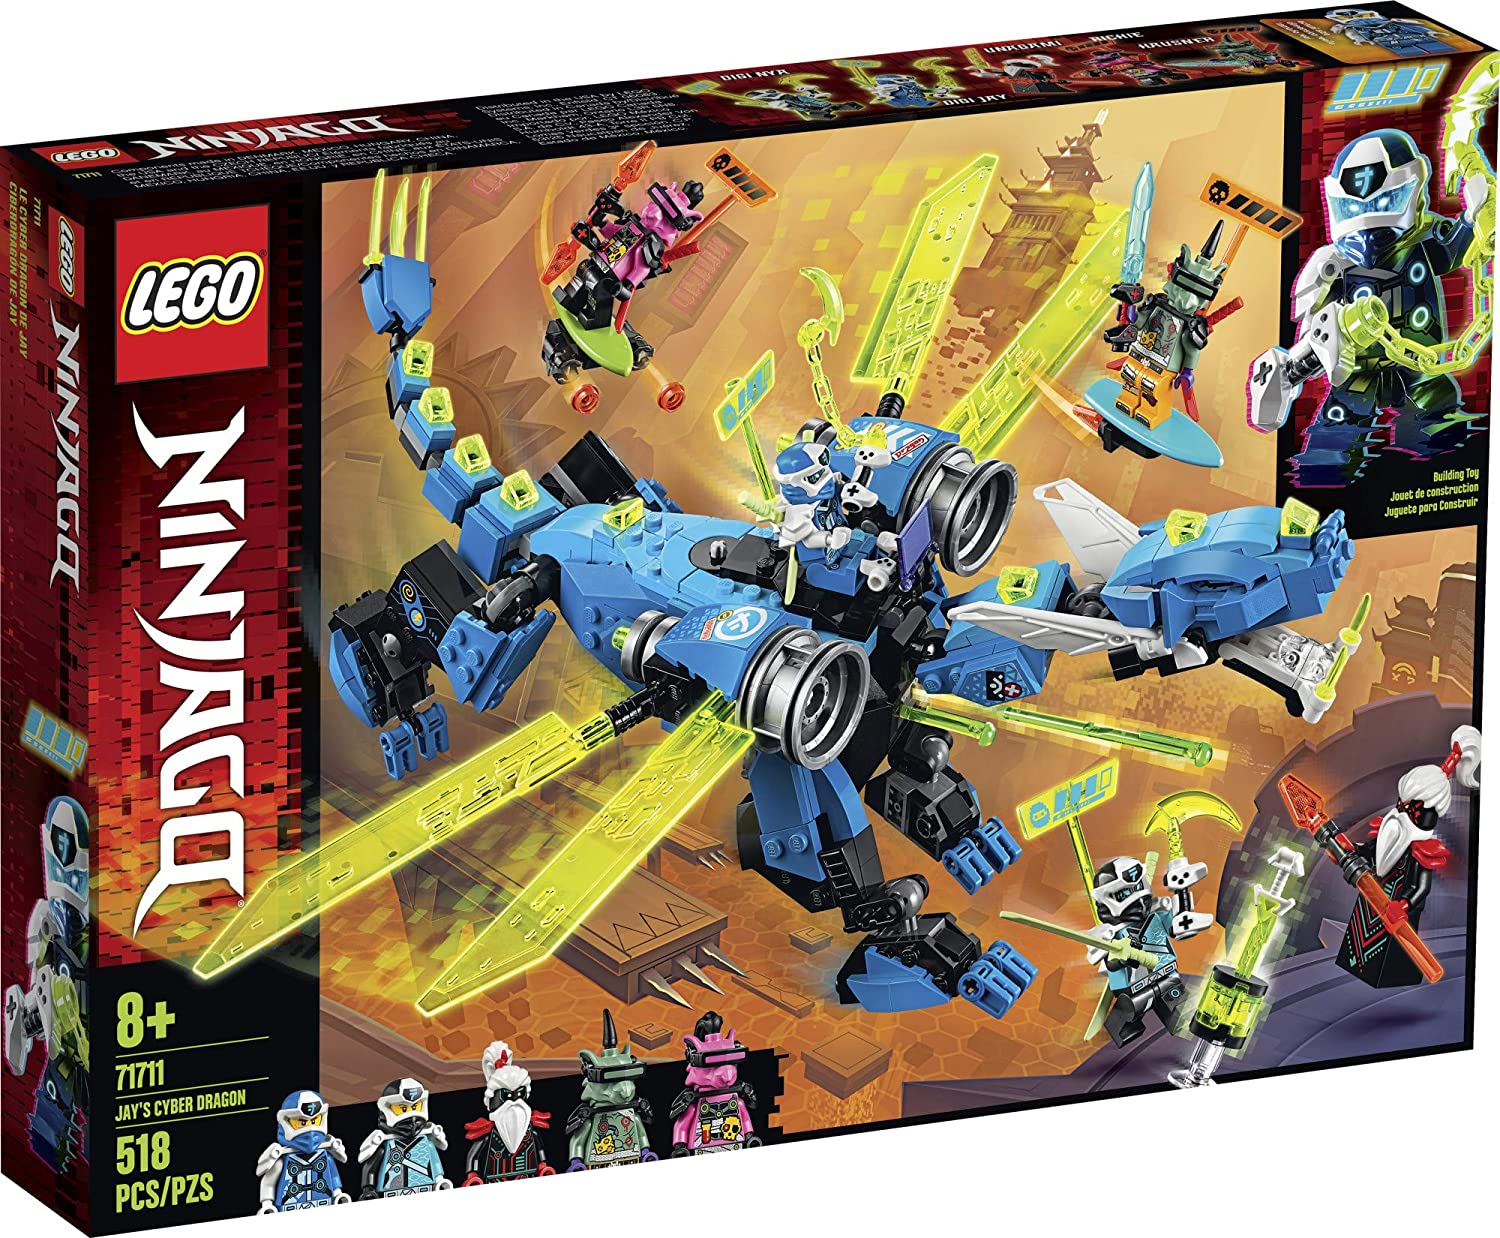 LEGO NINJAGO Jays Cyber Dragon 71711 Ninja Action Toy Building Kit, New 2020 (518 Pieces)